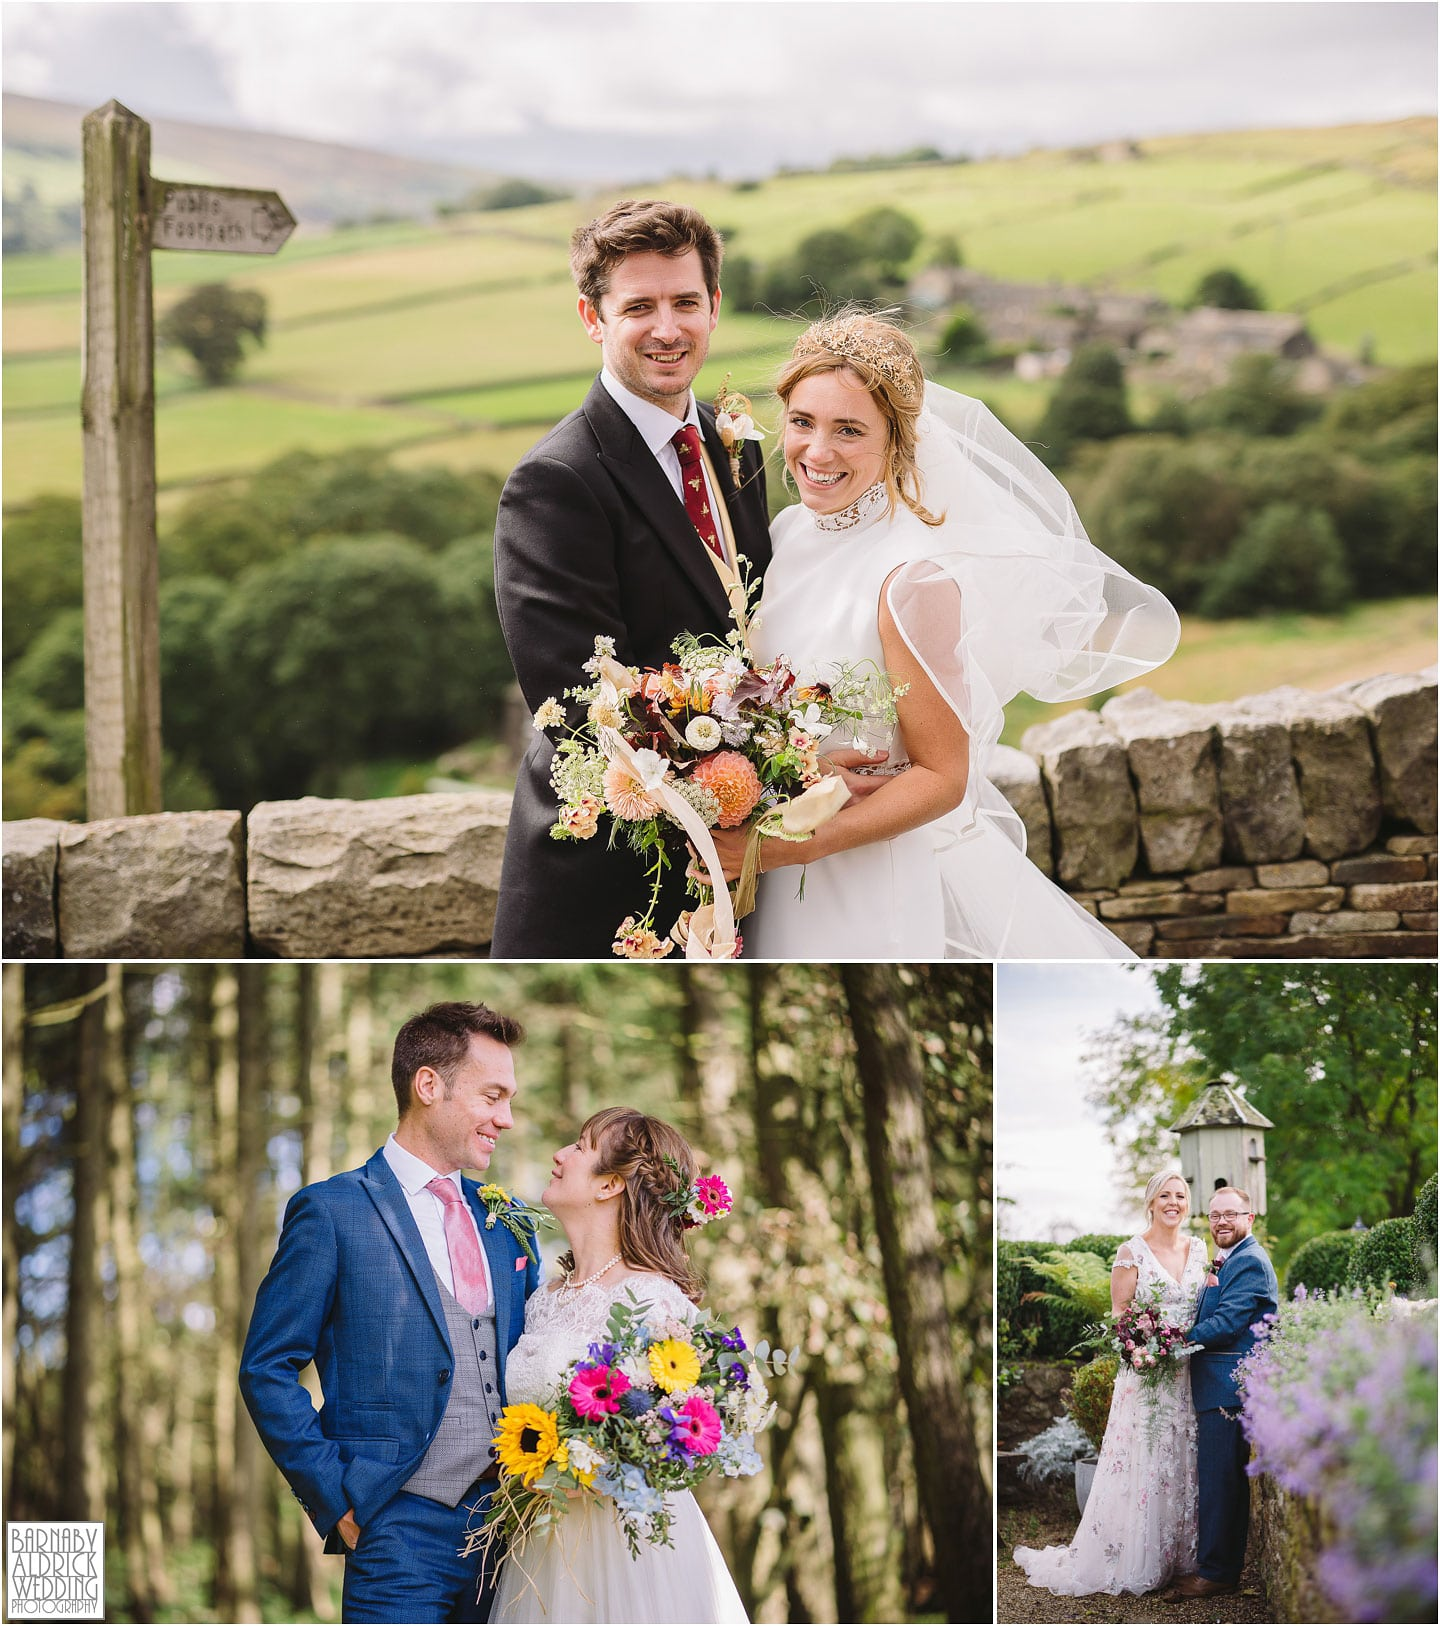 Relaxed bride and groom portraits